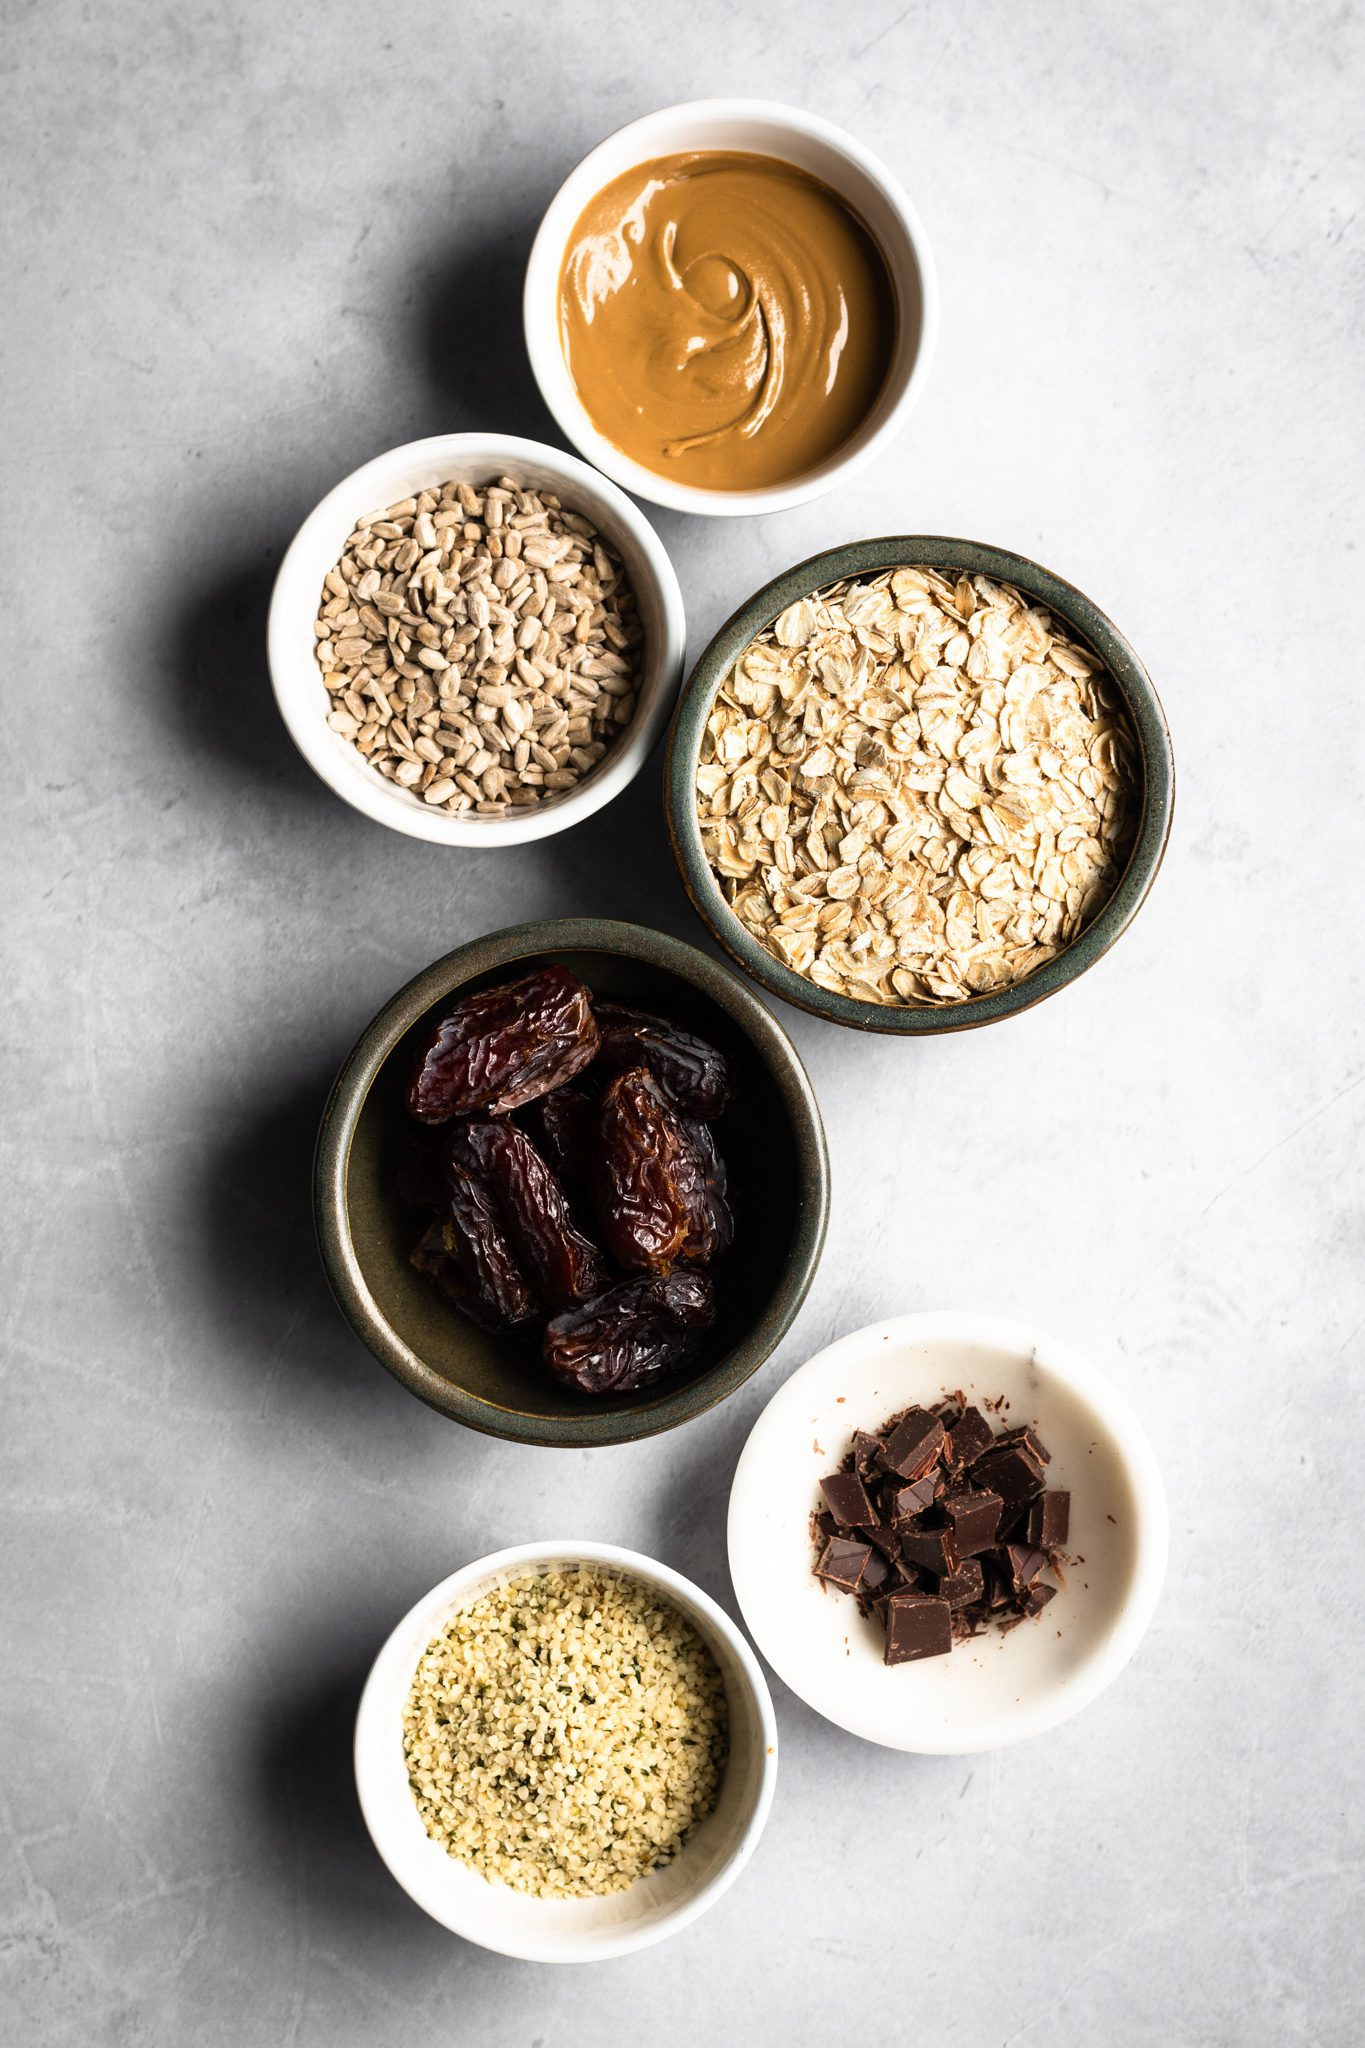 sunflower seed butter, sunflower seeds, oats, hemp hearts, dates and chocolate in bowls